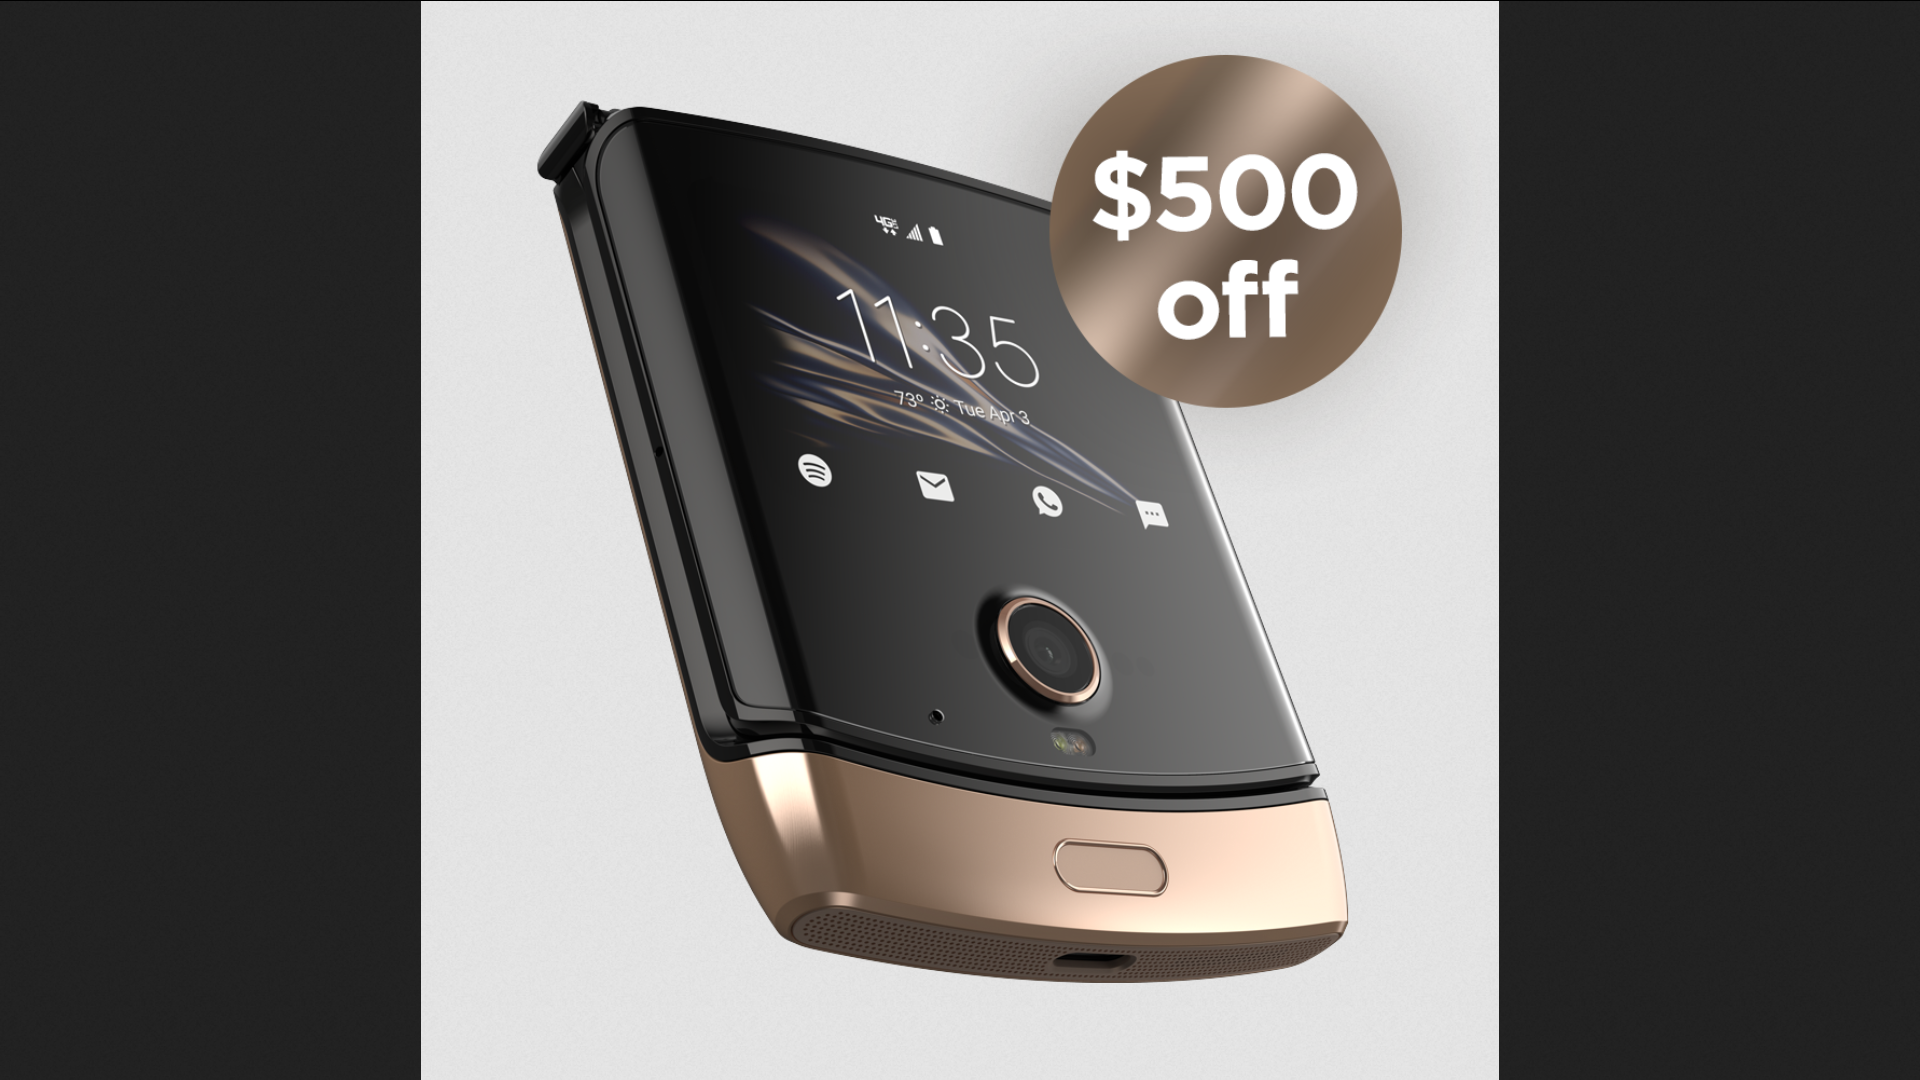 The New Motorola Razr Goes On Sale For The First Time At Us 500 Less Than Normal Notebookcheck Net News